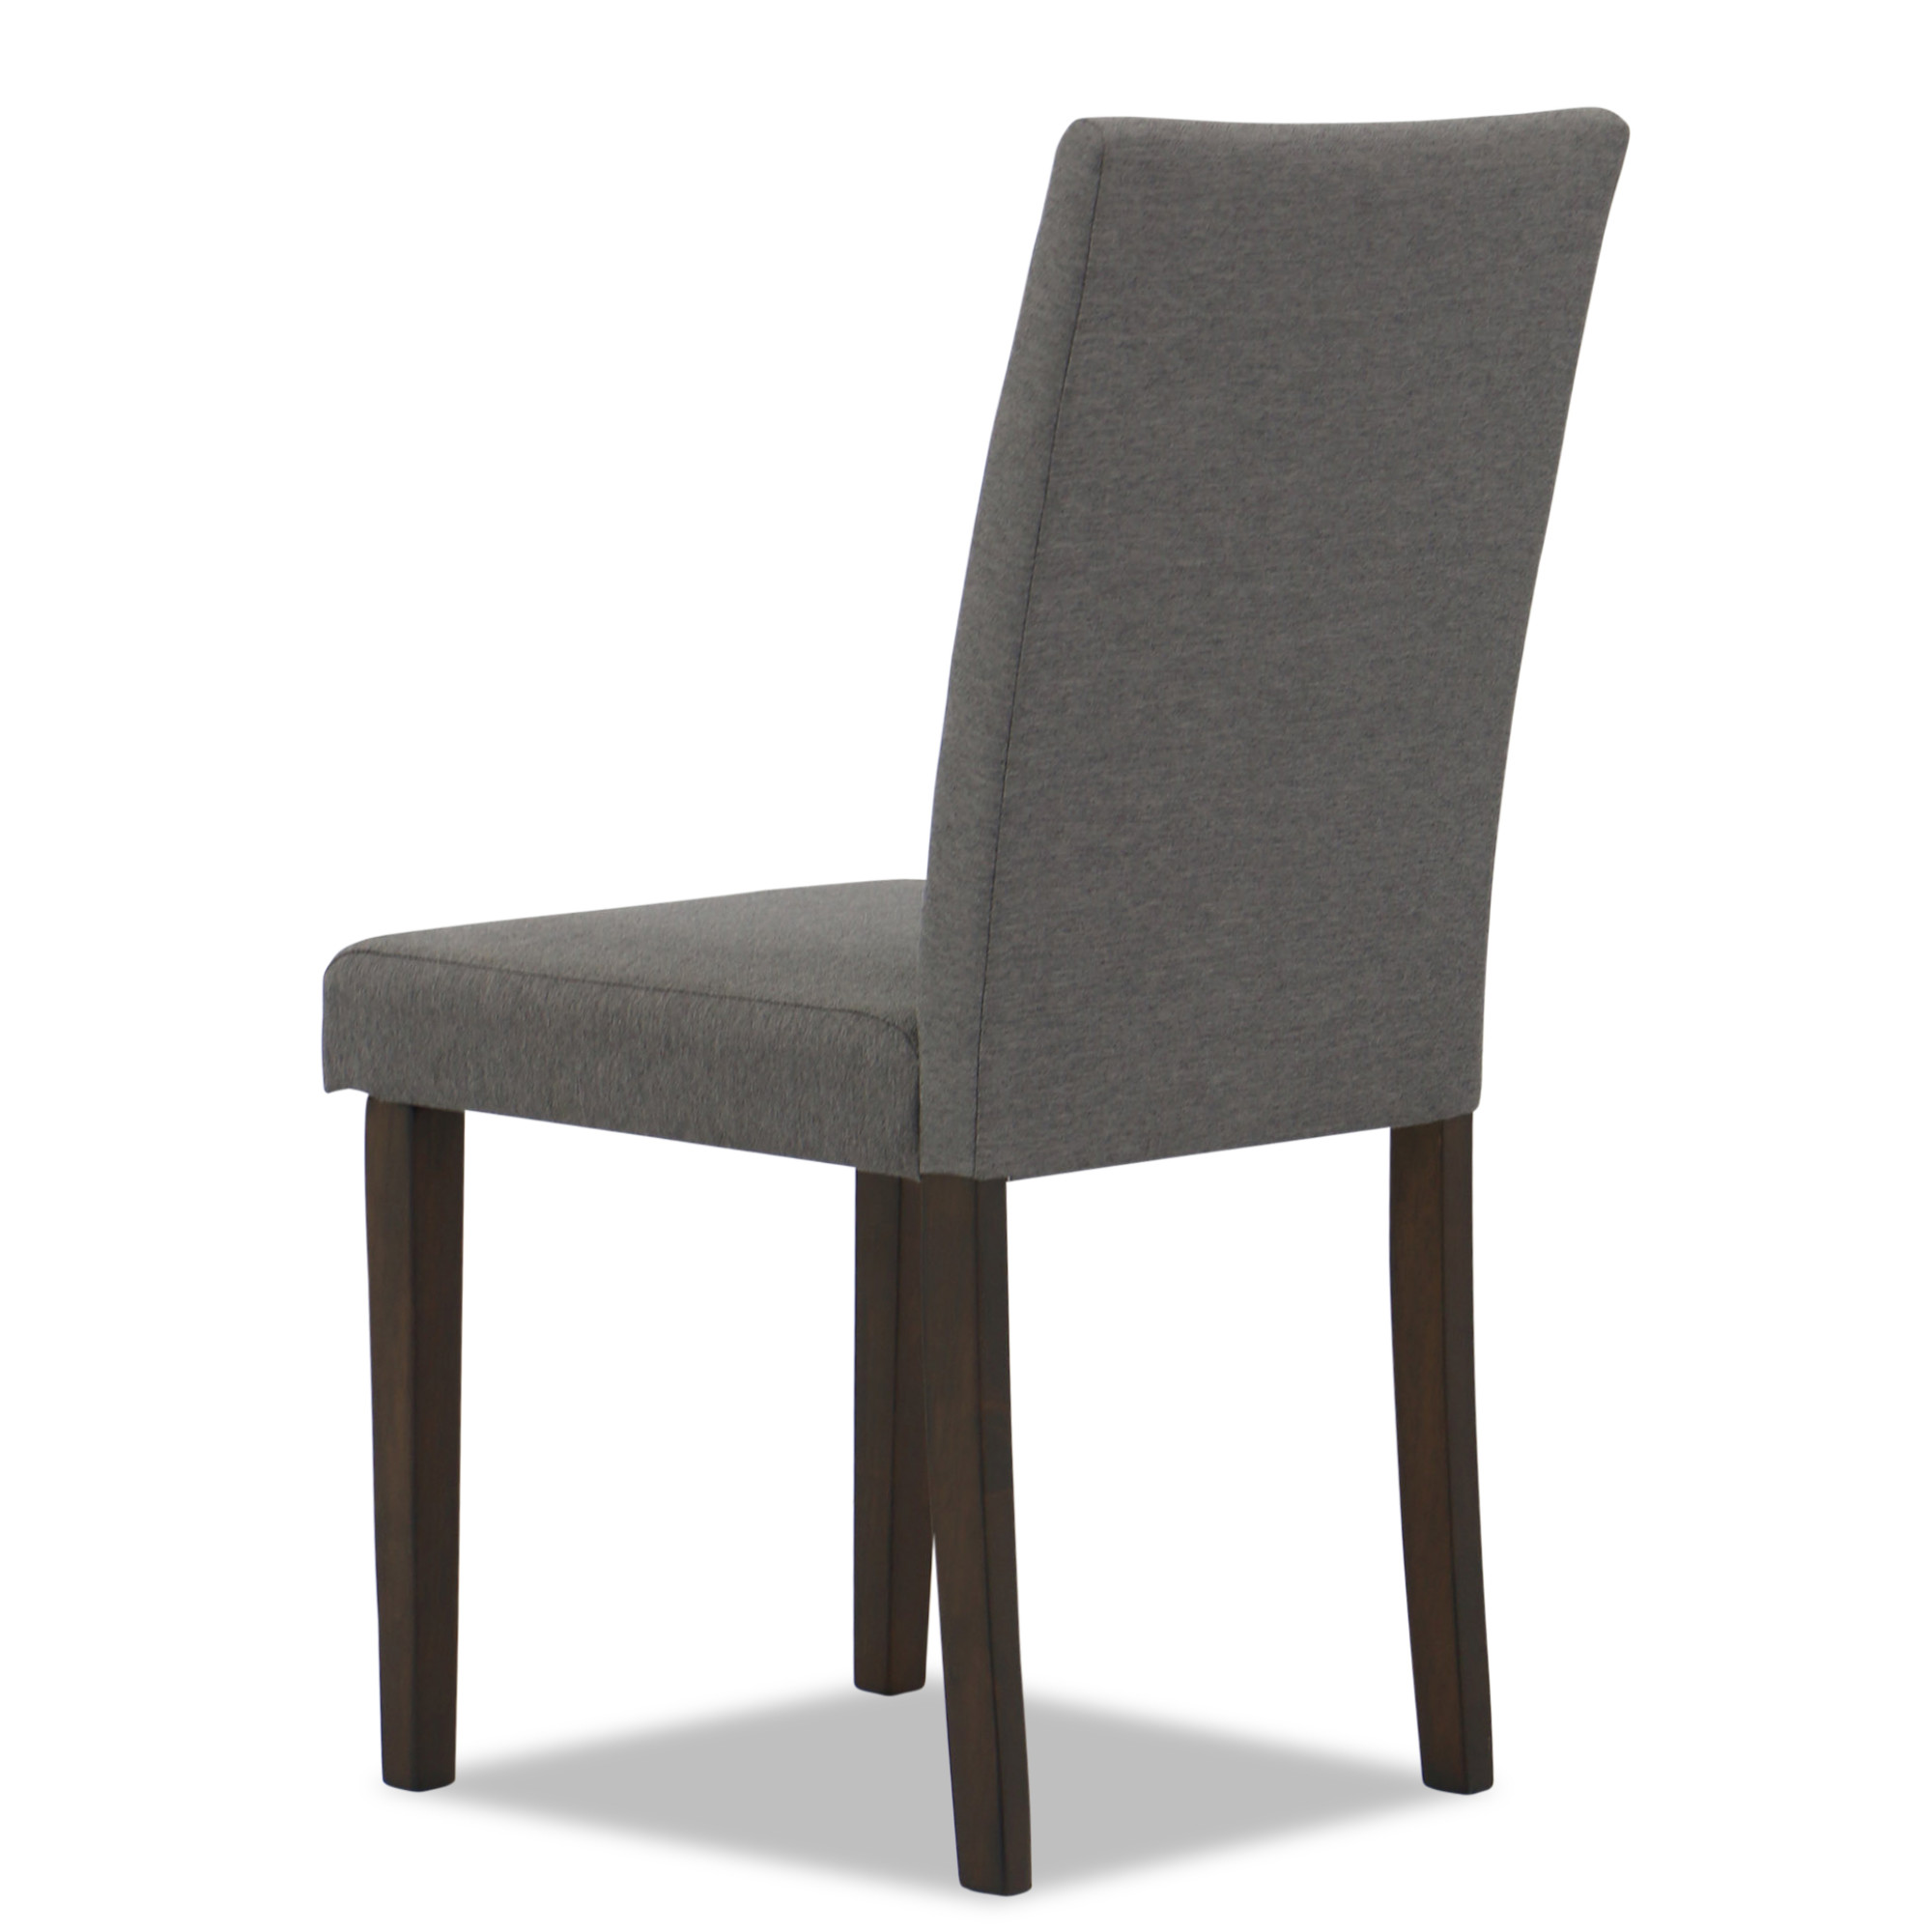 Libby Dining Chair Wenge  Furniture  Home Dcor  FortyTwo